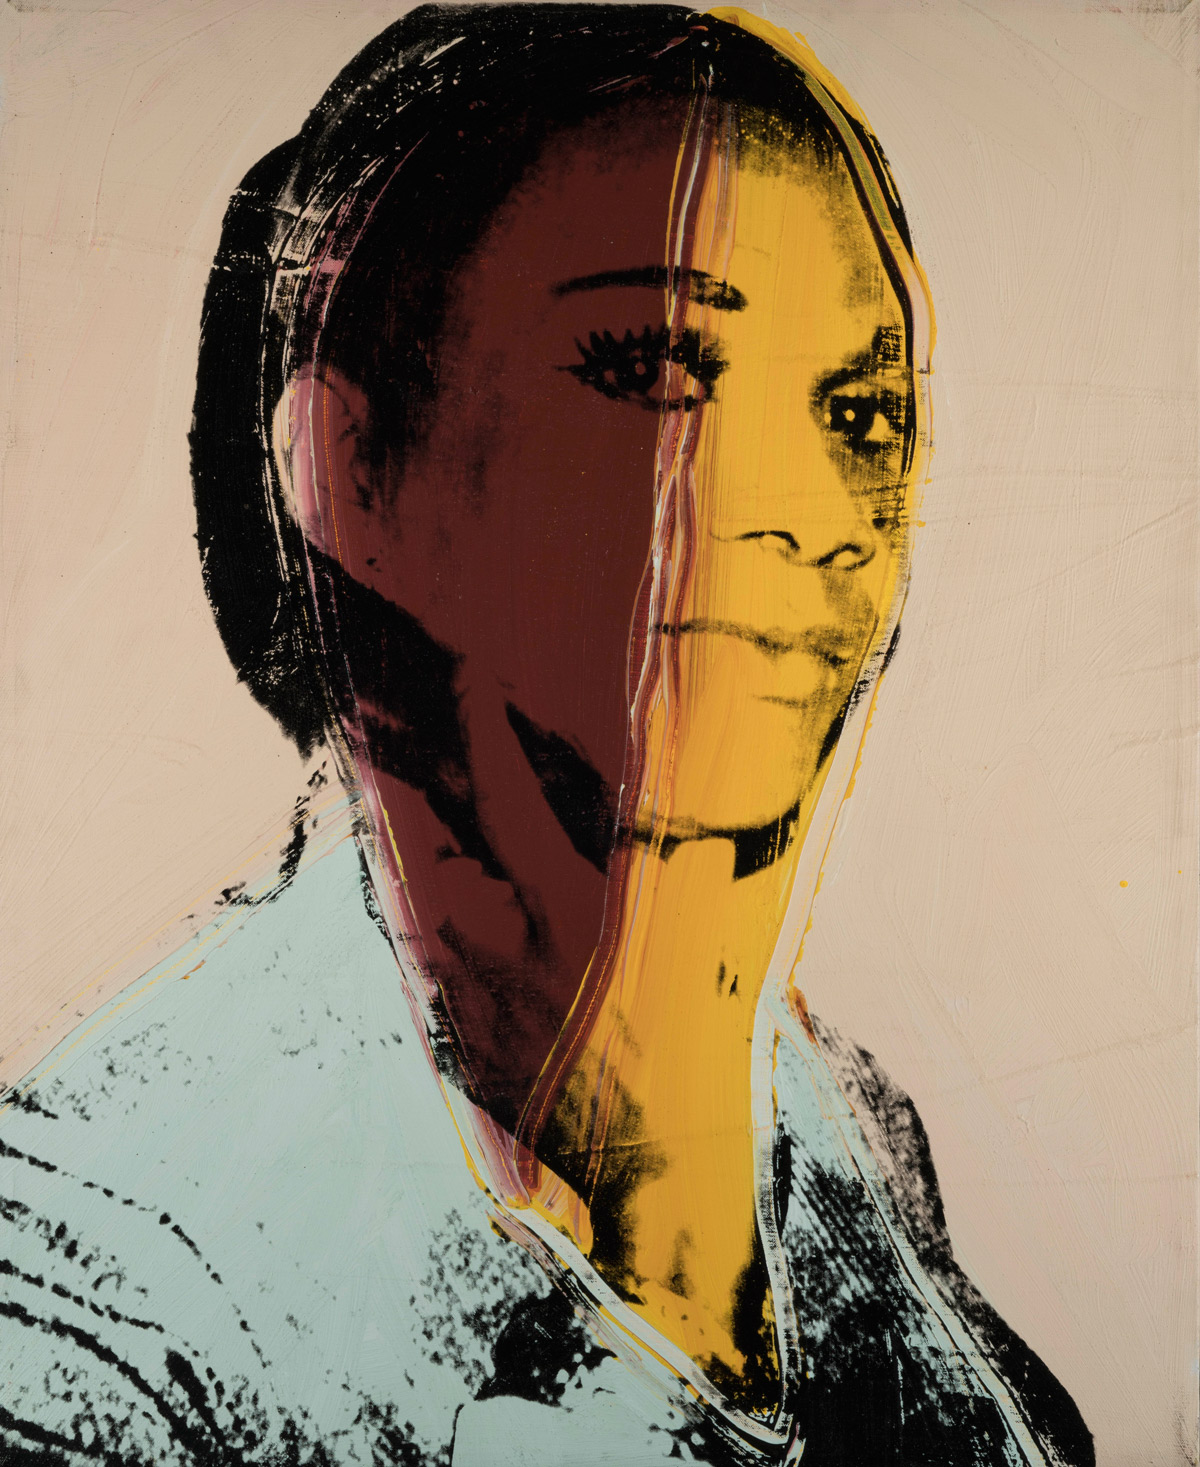 Andy-Warhol-Ladies-and-Gentlemen-Alphanso-Panell